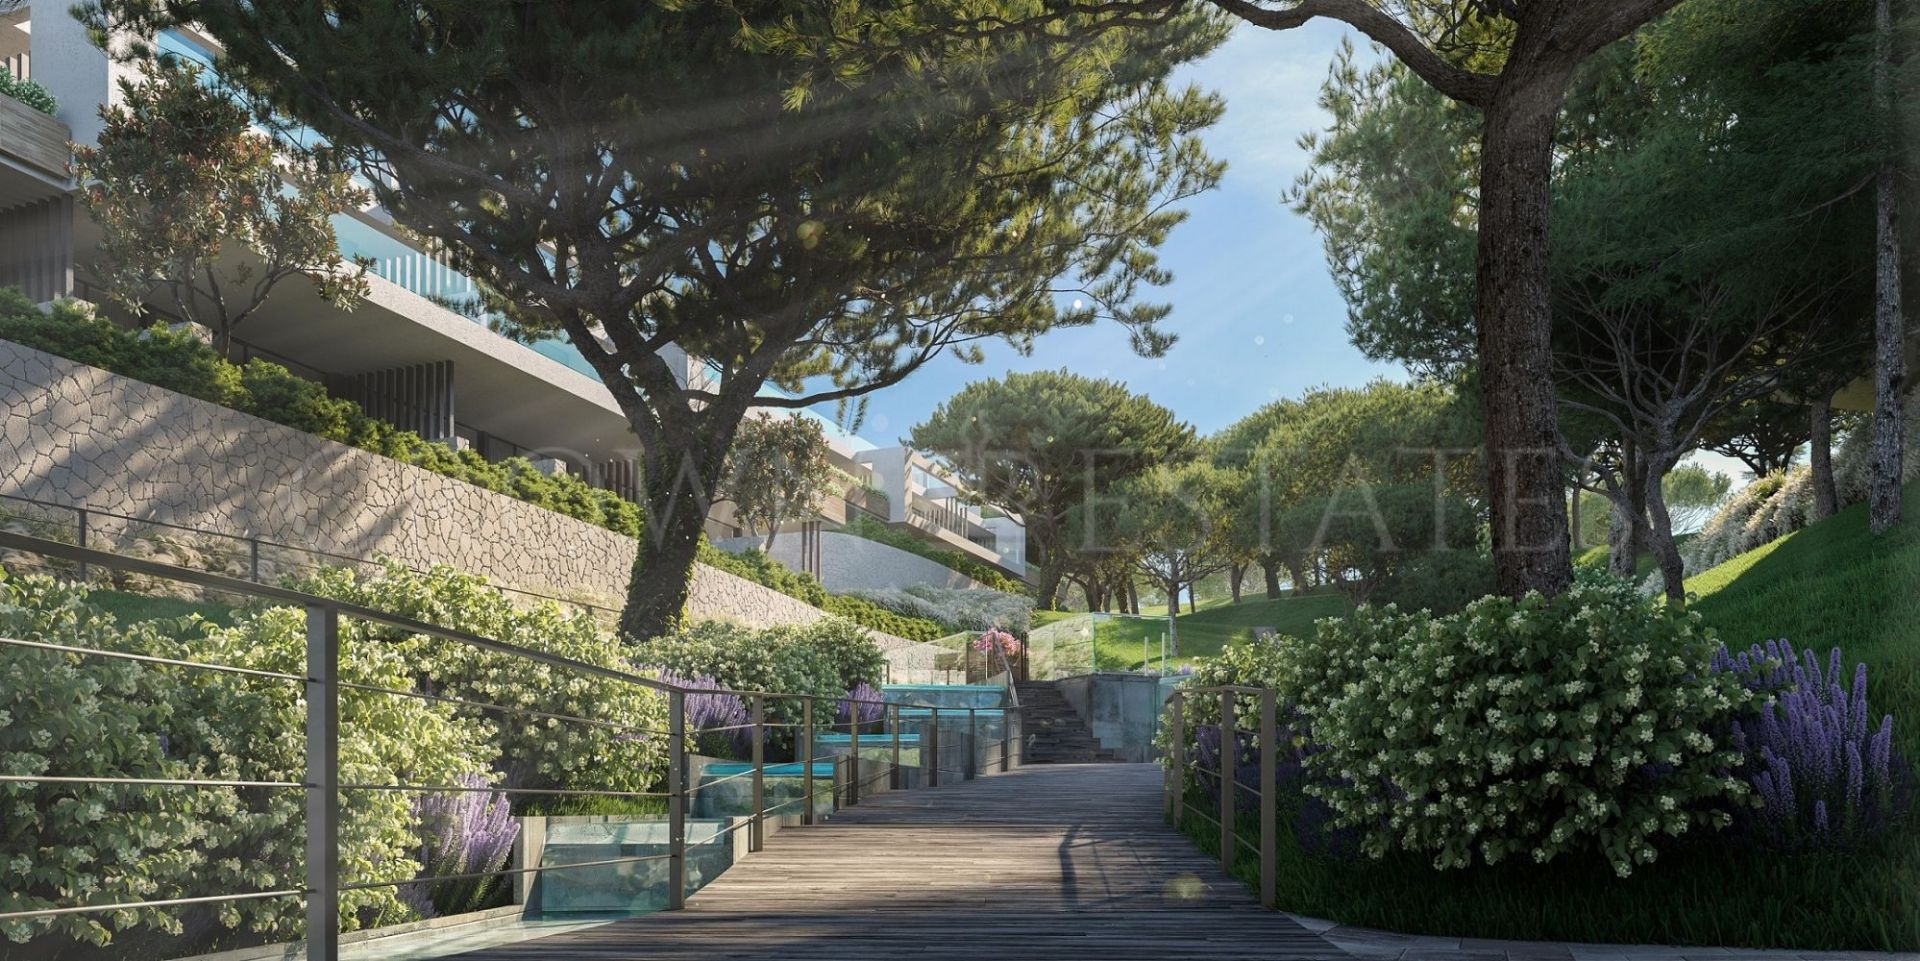 A Boutique Development of 44 Luxury Apartments & Penthouses Nestled in the Pine Trees of Cabopino.